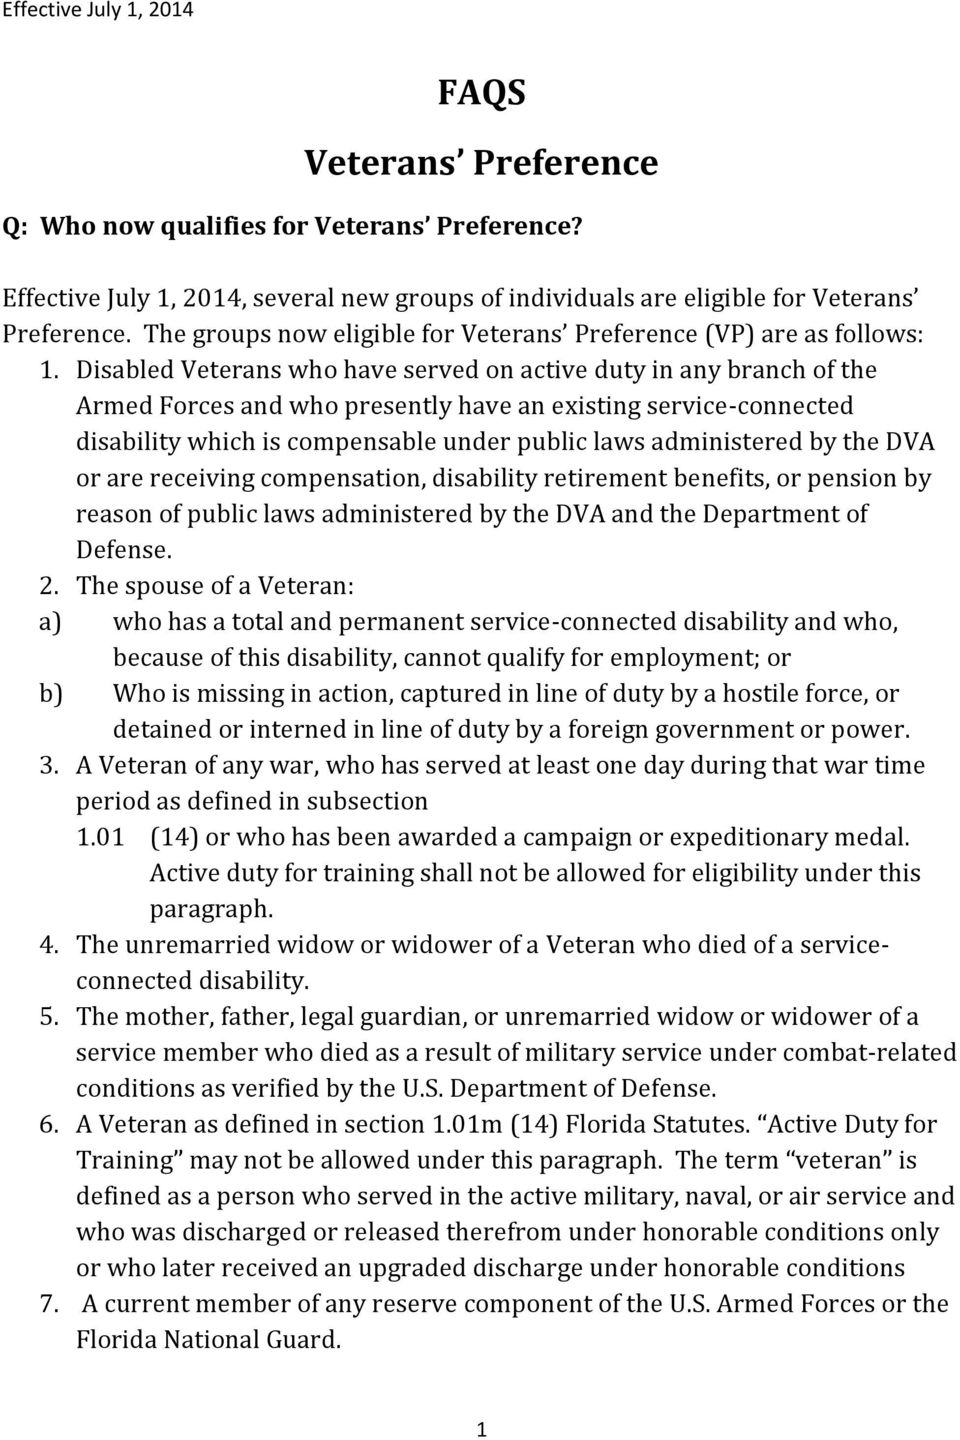 Disabled Veterans who have served on active duty in any branch of the Armed Forces and who presently have an existing service-connected disability which is compensable under public laws administered